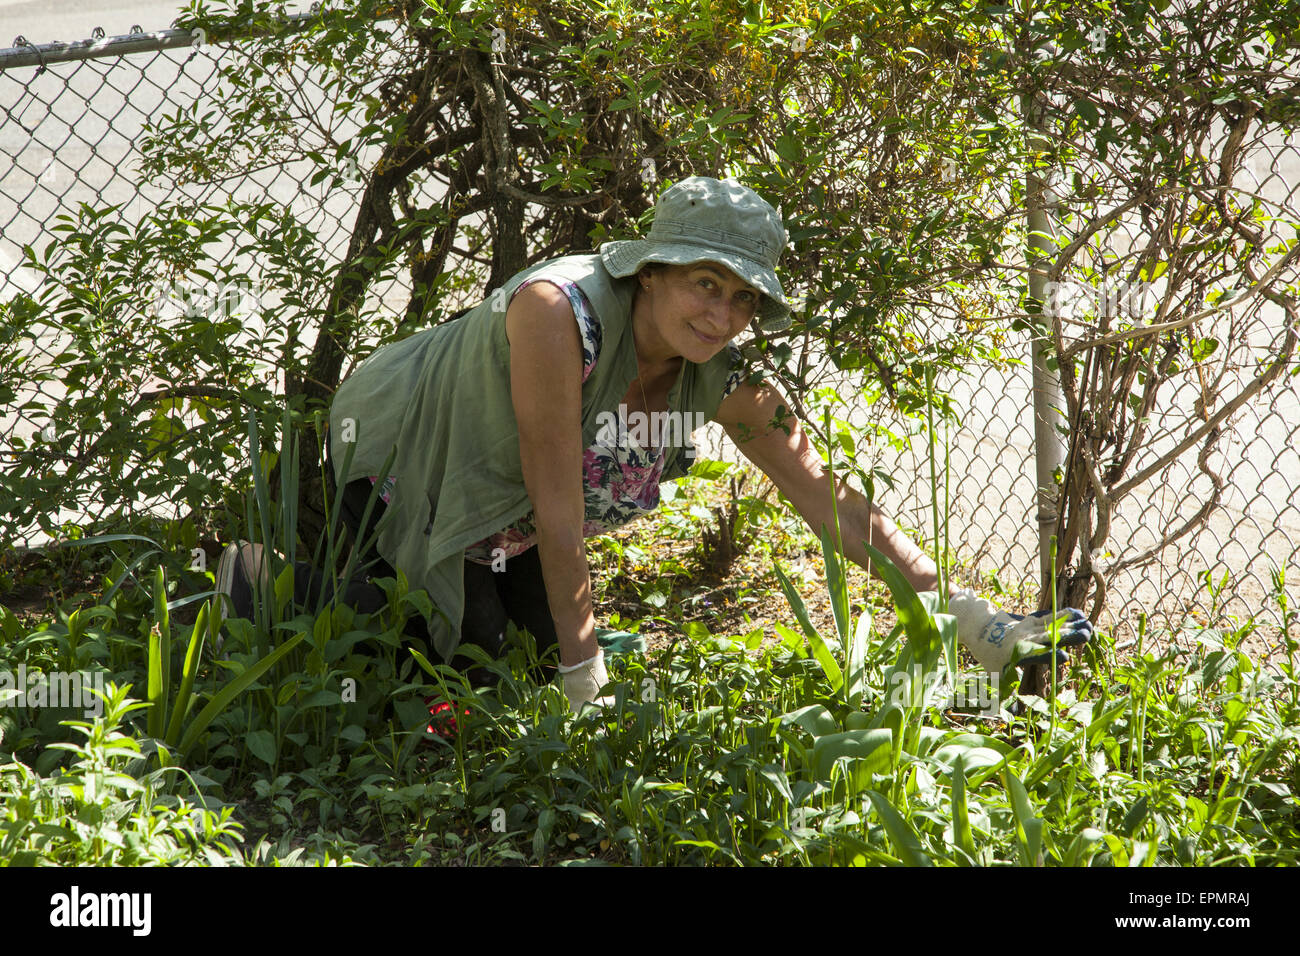 Woman pulls weeds in her front yard in the Kensington neighborhood of Brooklyn, NY. - Stock Image